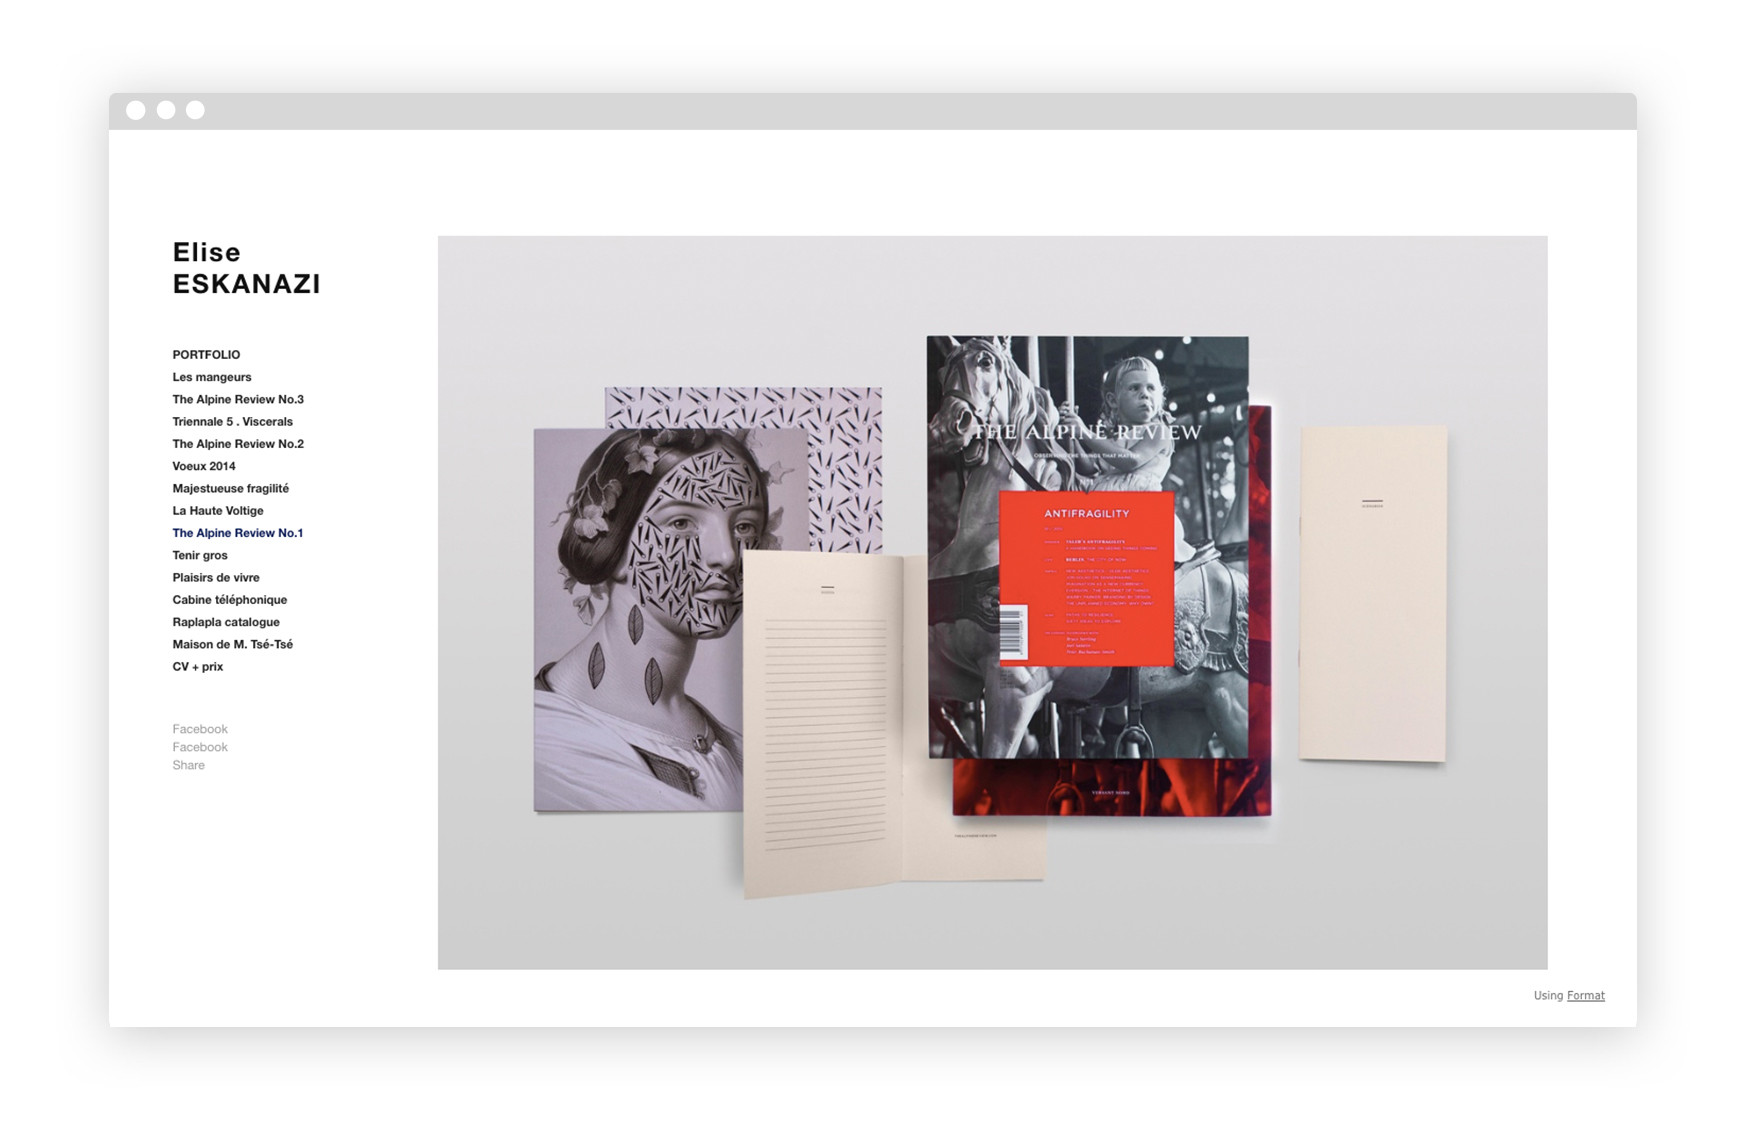 20 design portfolios you need to see for inspiration